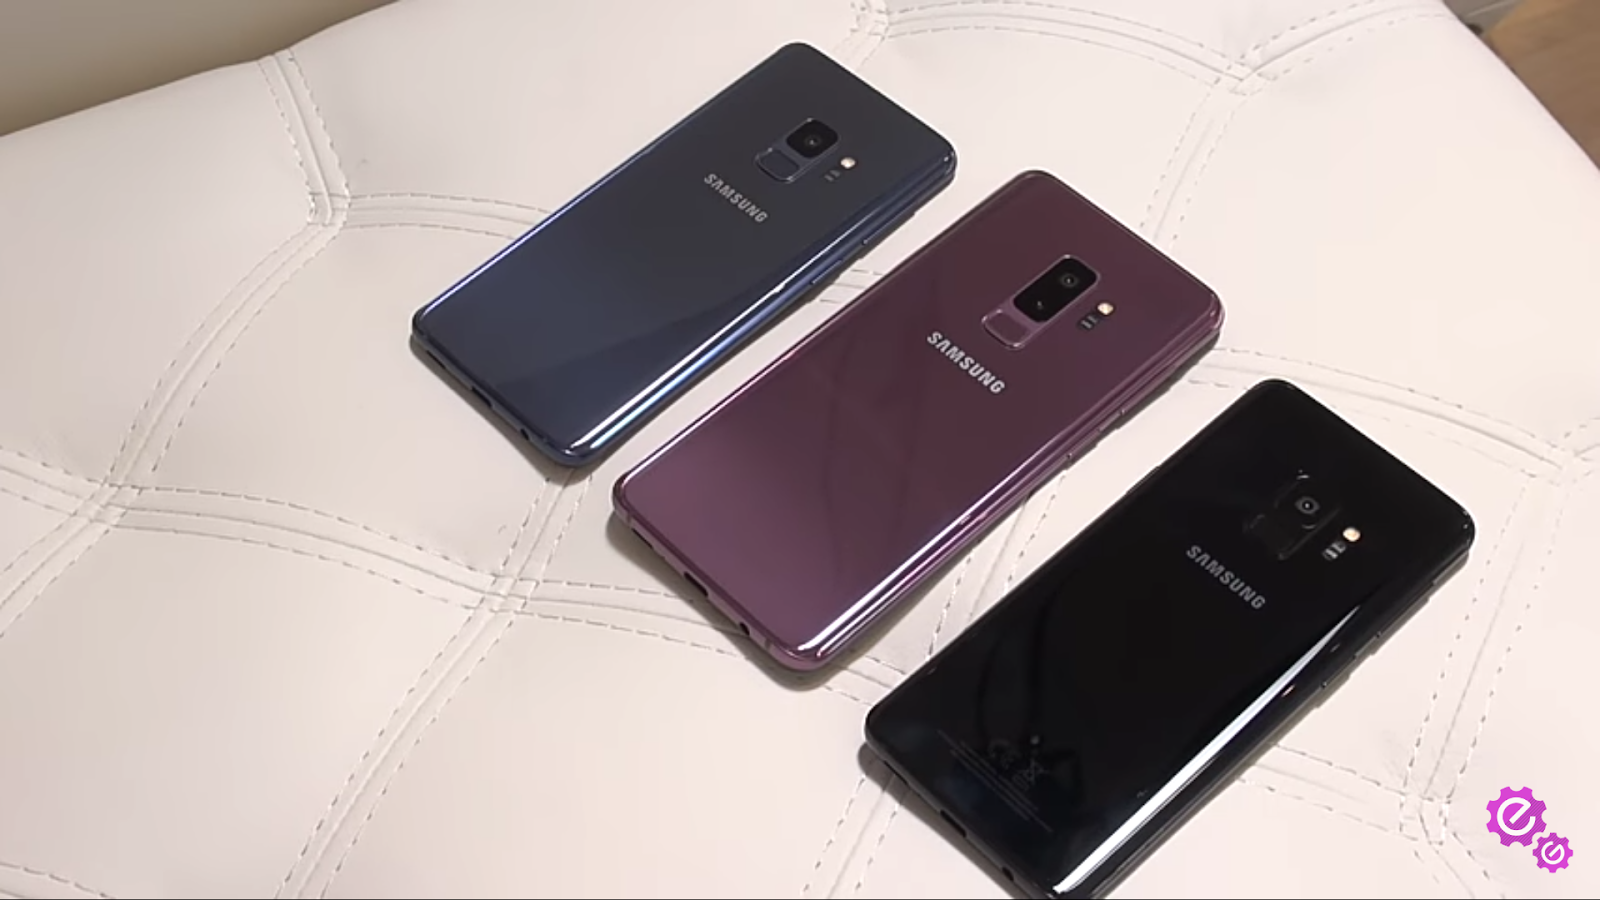 Samsung galaxy s9 and s9+ three colors